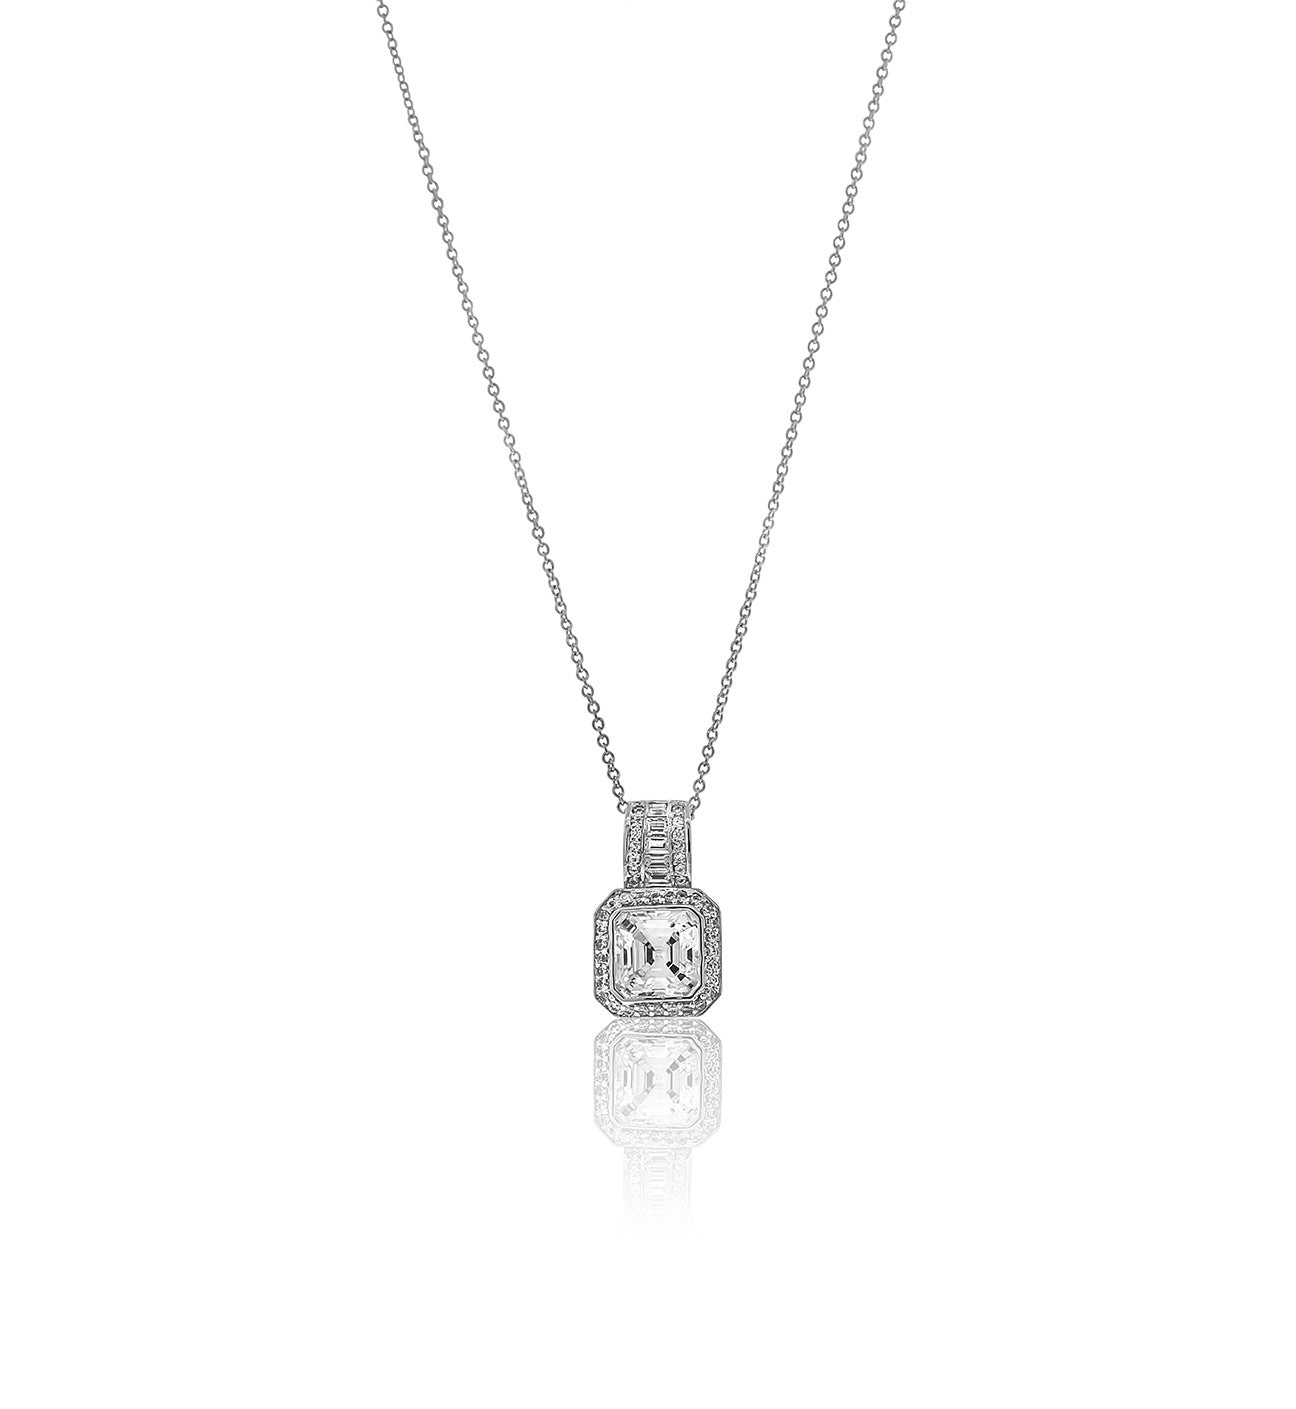 necklace b o i h products e sterling solitare w pendant solitaire silver n s